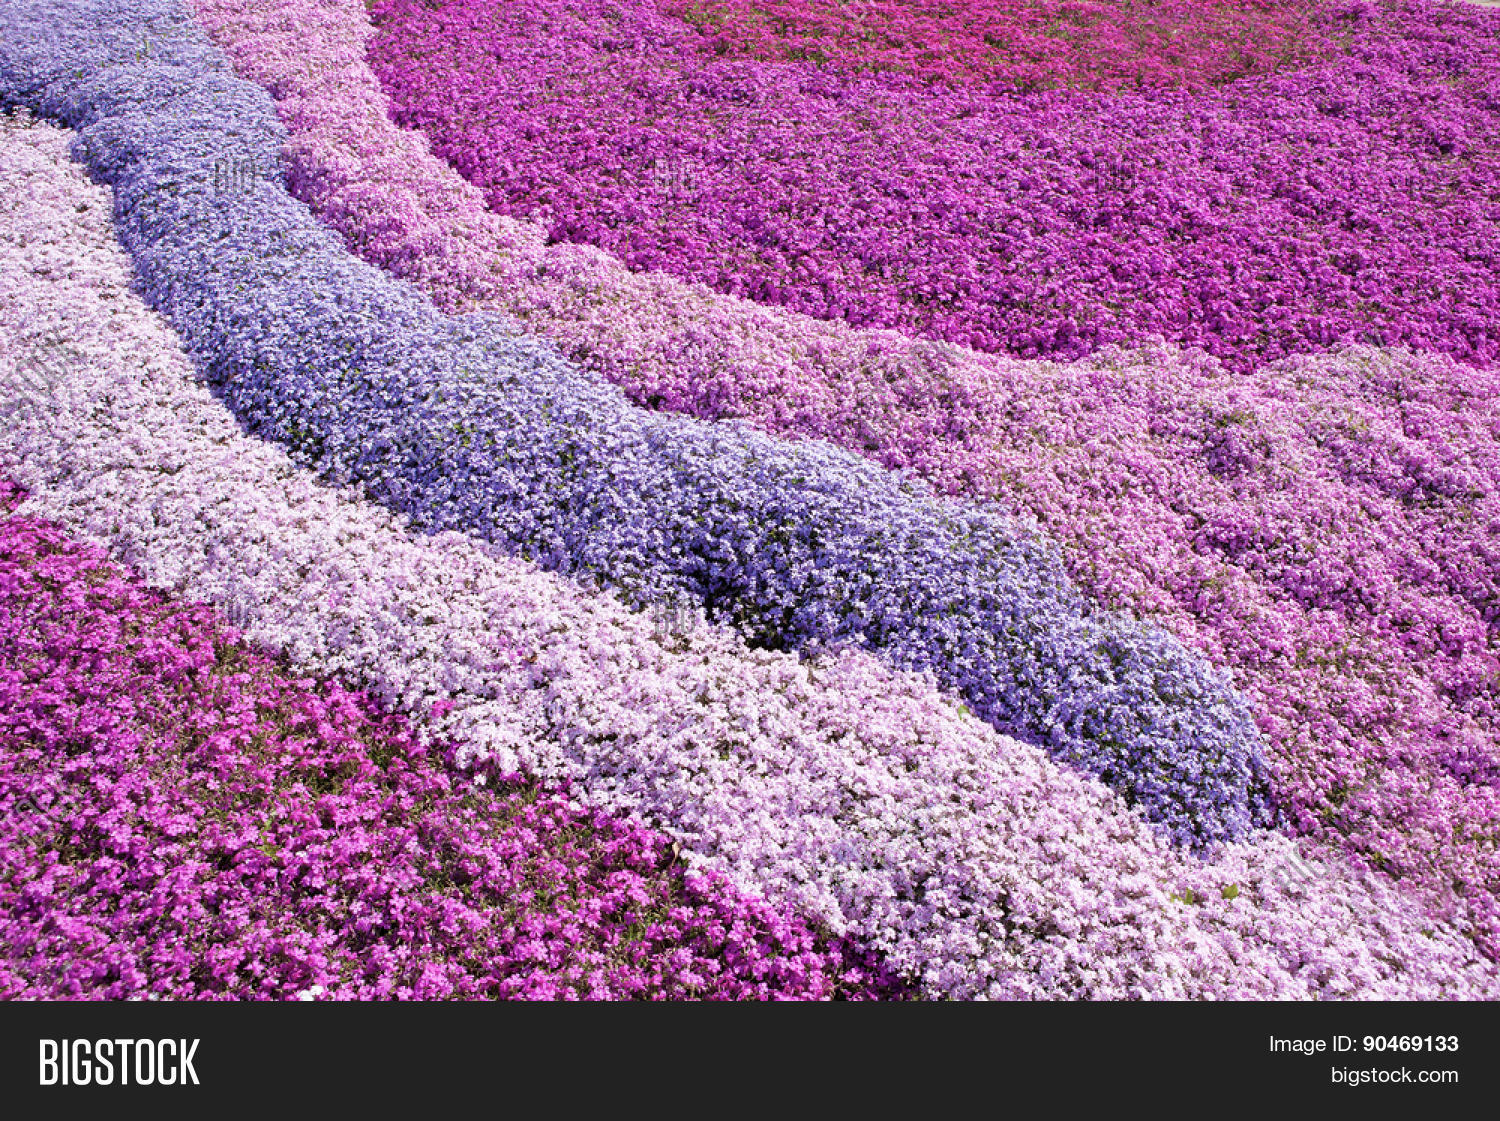 Drought Spells Bad News For Creeping Phlox Plants Both Stolonifera And Subulata Grow Best In Soil That Stays Moist